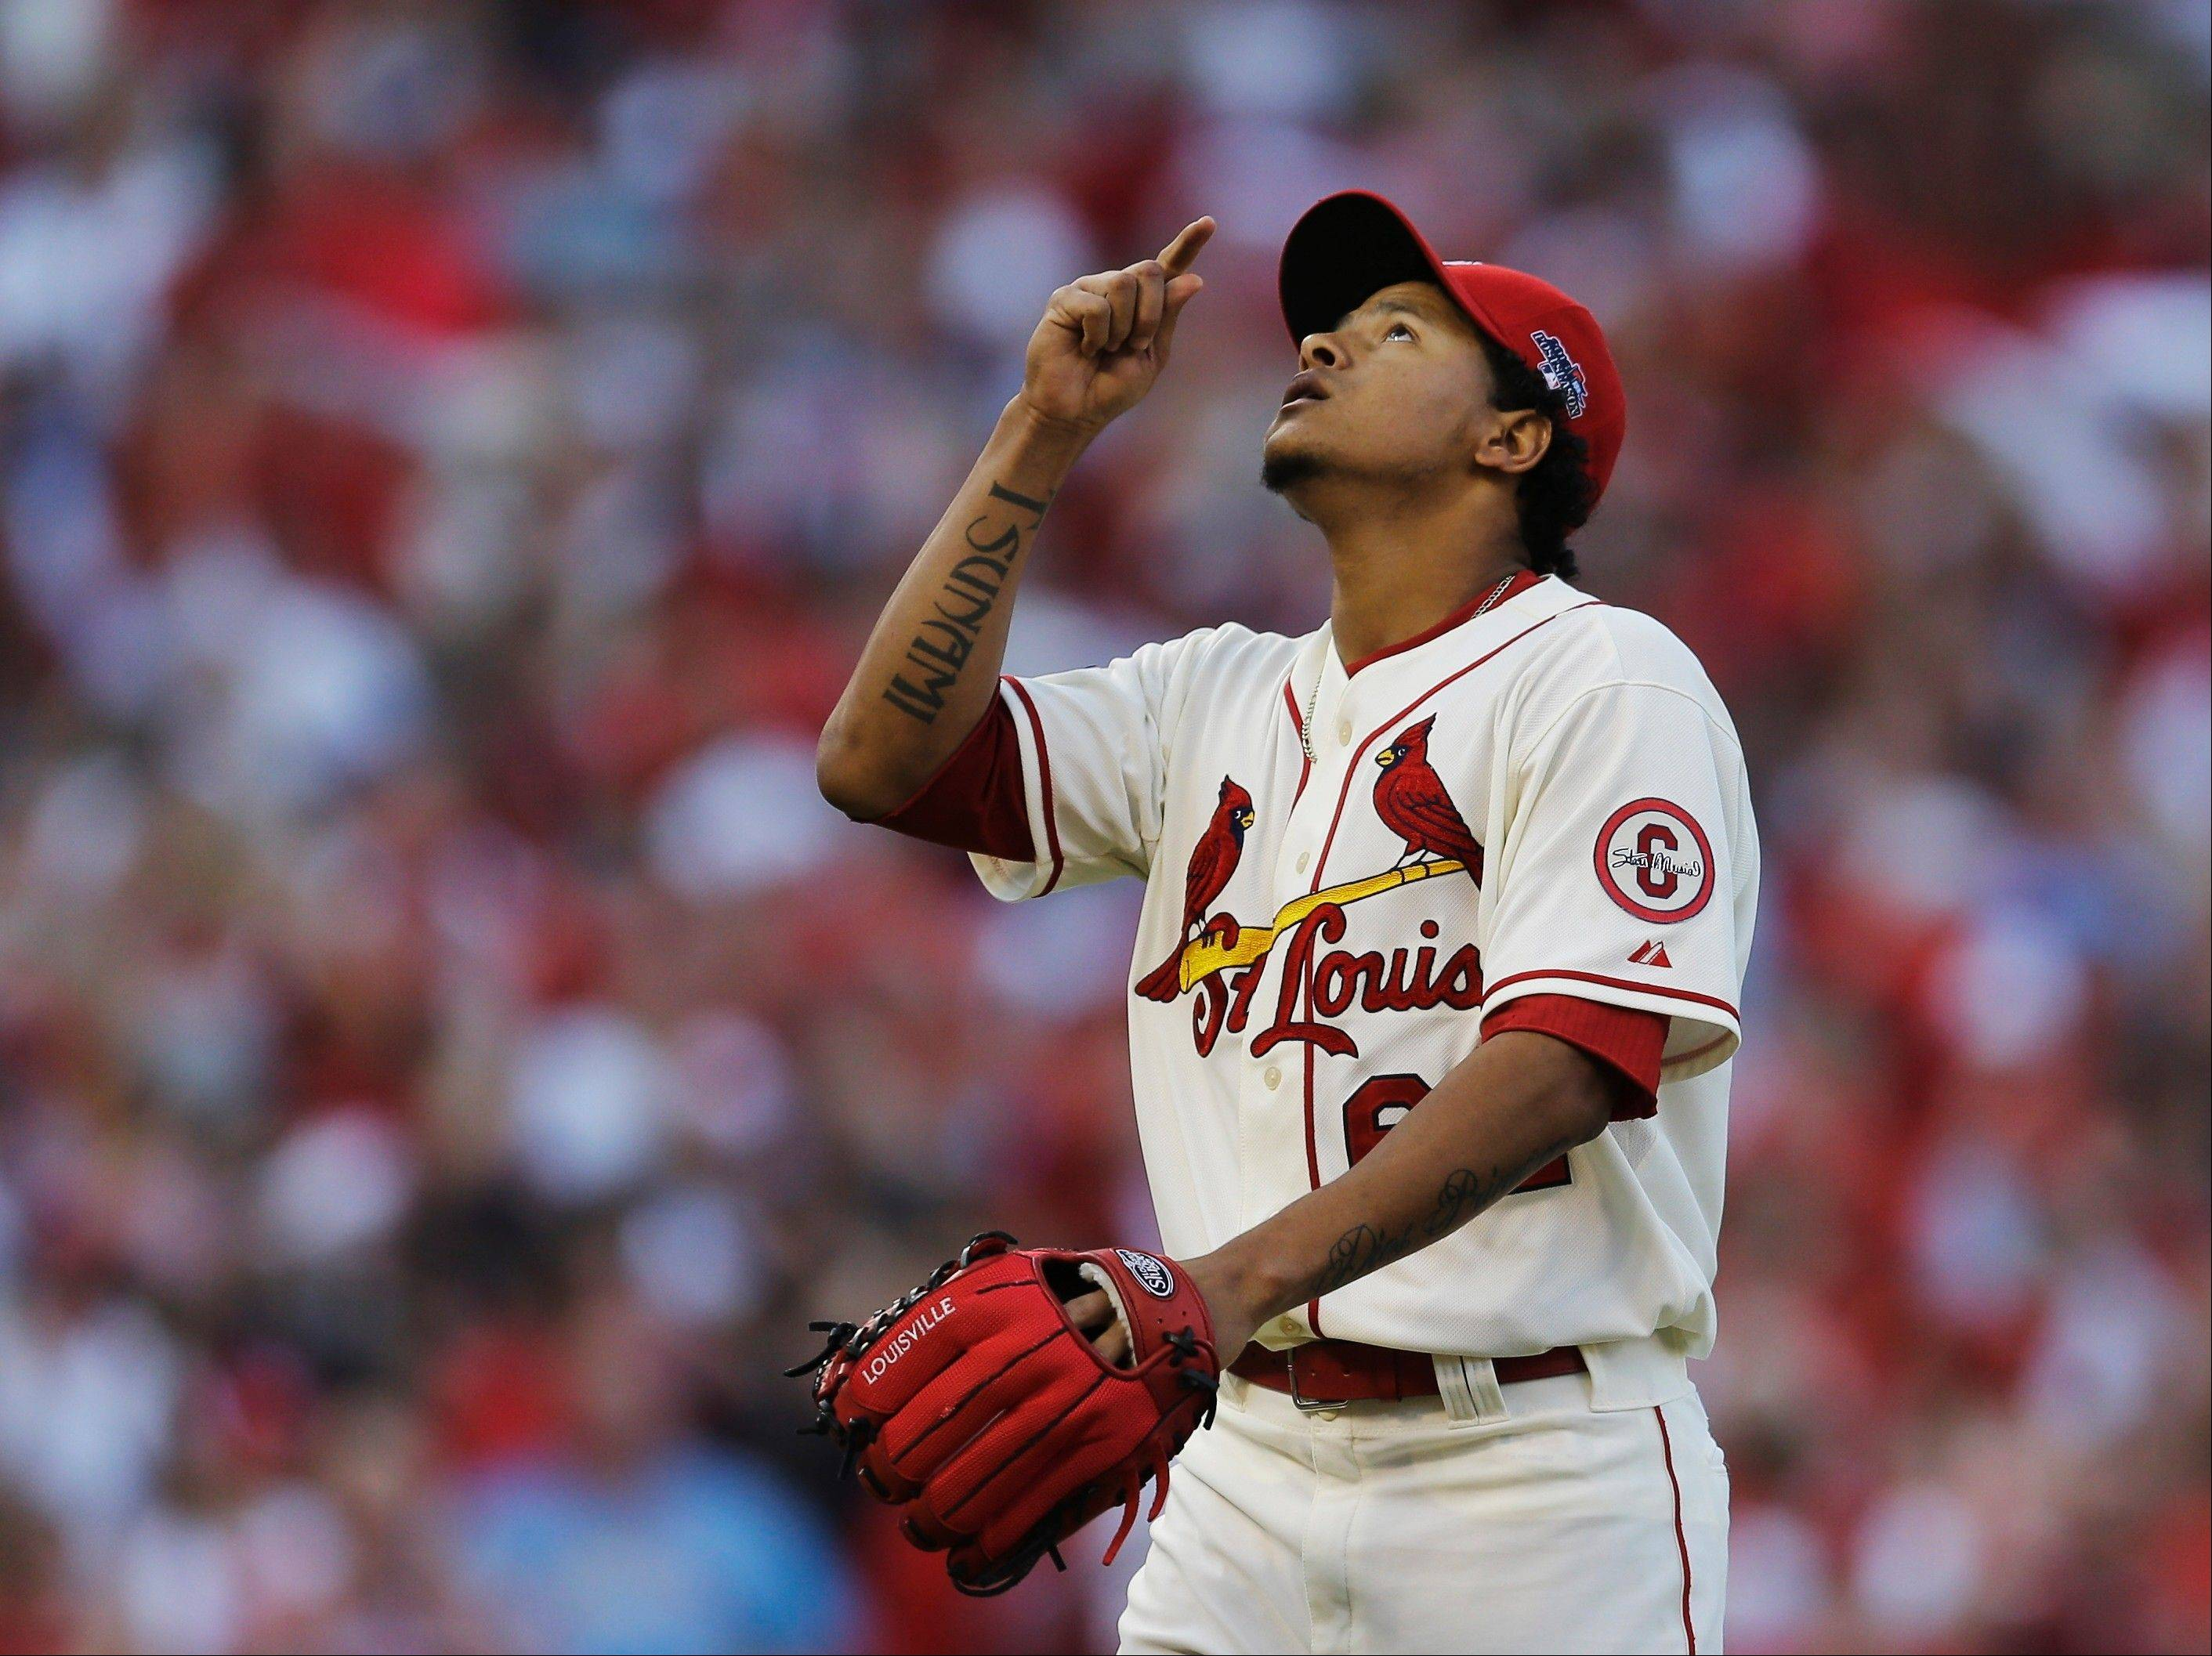 St. Louis Cardinals relief pitcher Carlos Martinez sky-points after striking out the Los Angeles Dodgers' Adrian Gonzalez in Saturday's eighth inning.